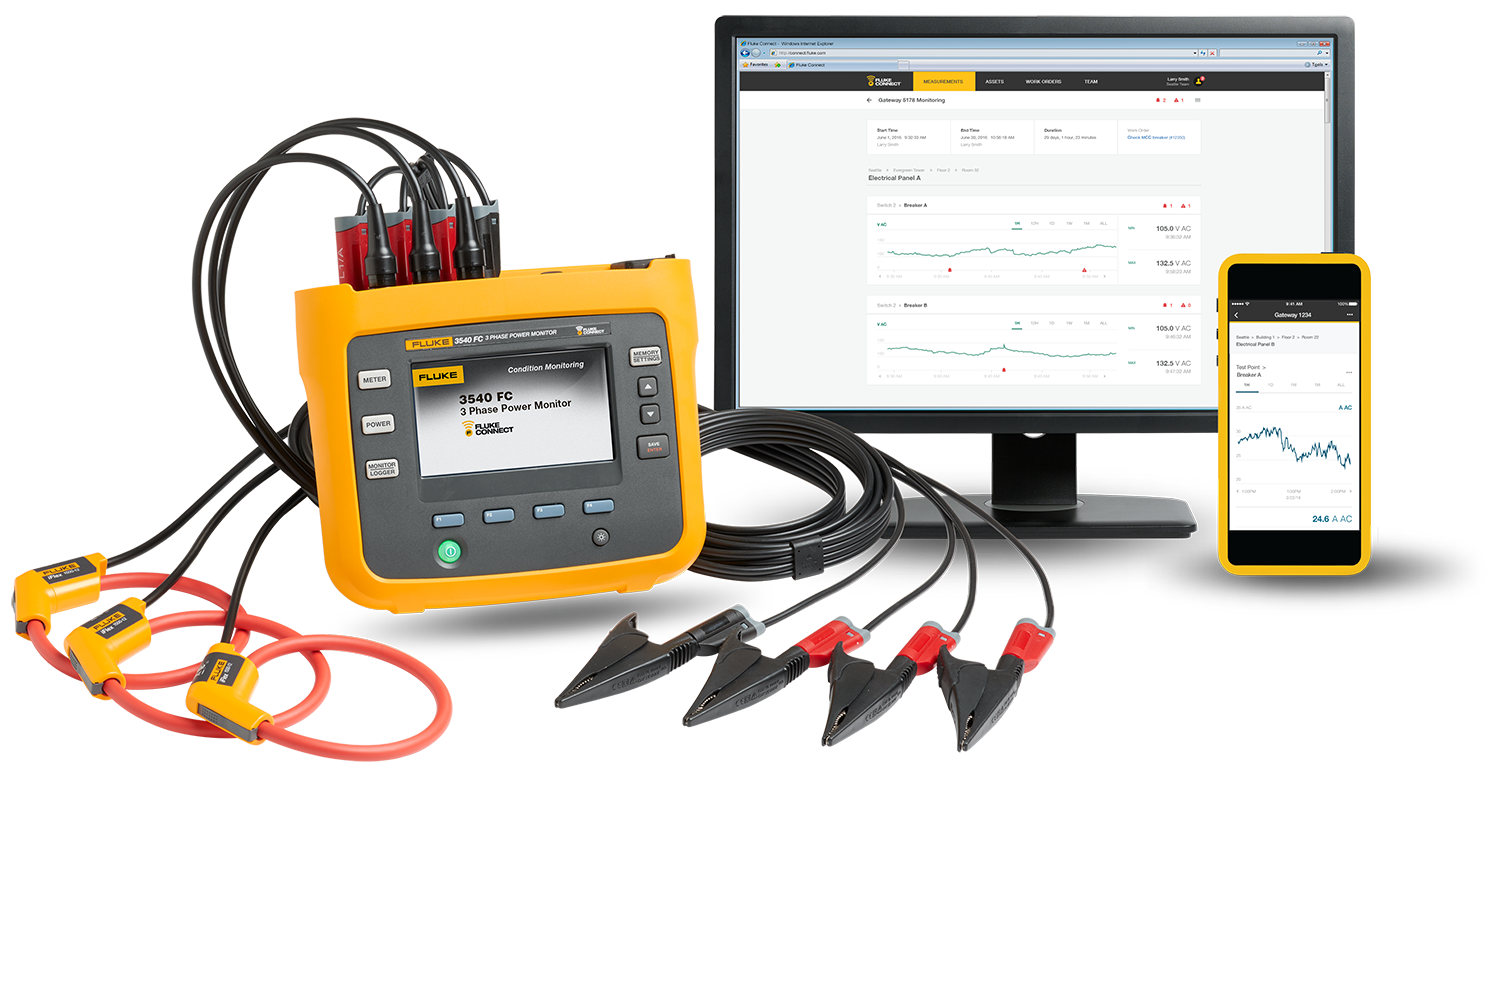 A Fluke 3540 FC Three-Phase Power Monitor and Fluke Connect software on a desktop and smart device.